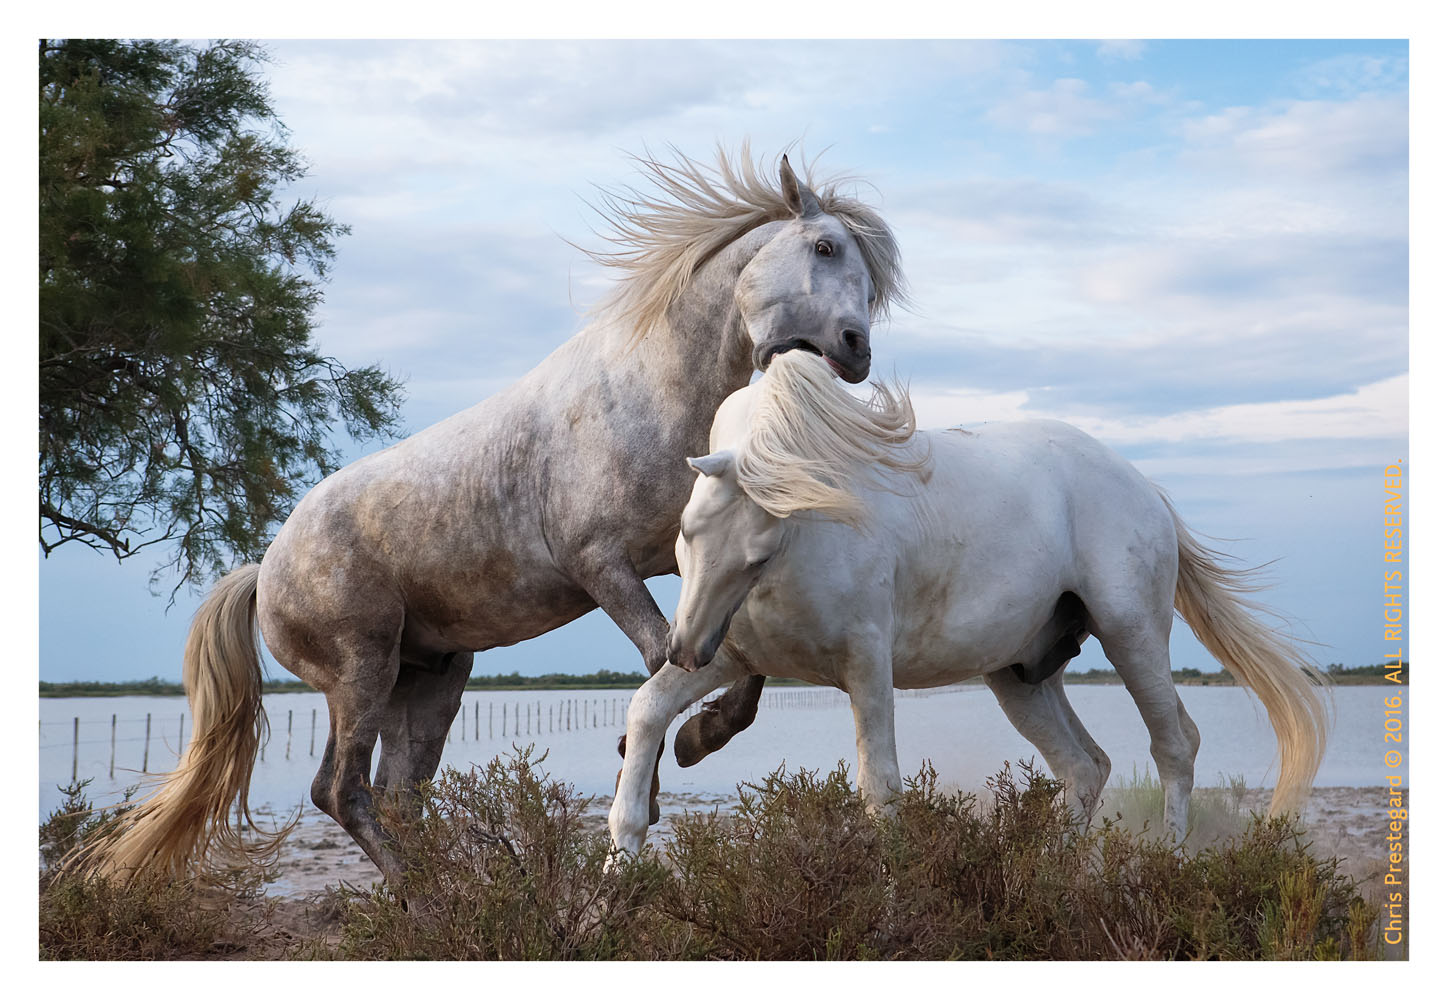 Camargue horses, St. Maries de la Mer, South of France, June 2016